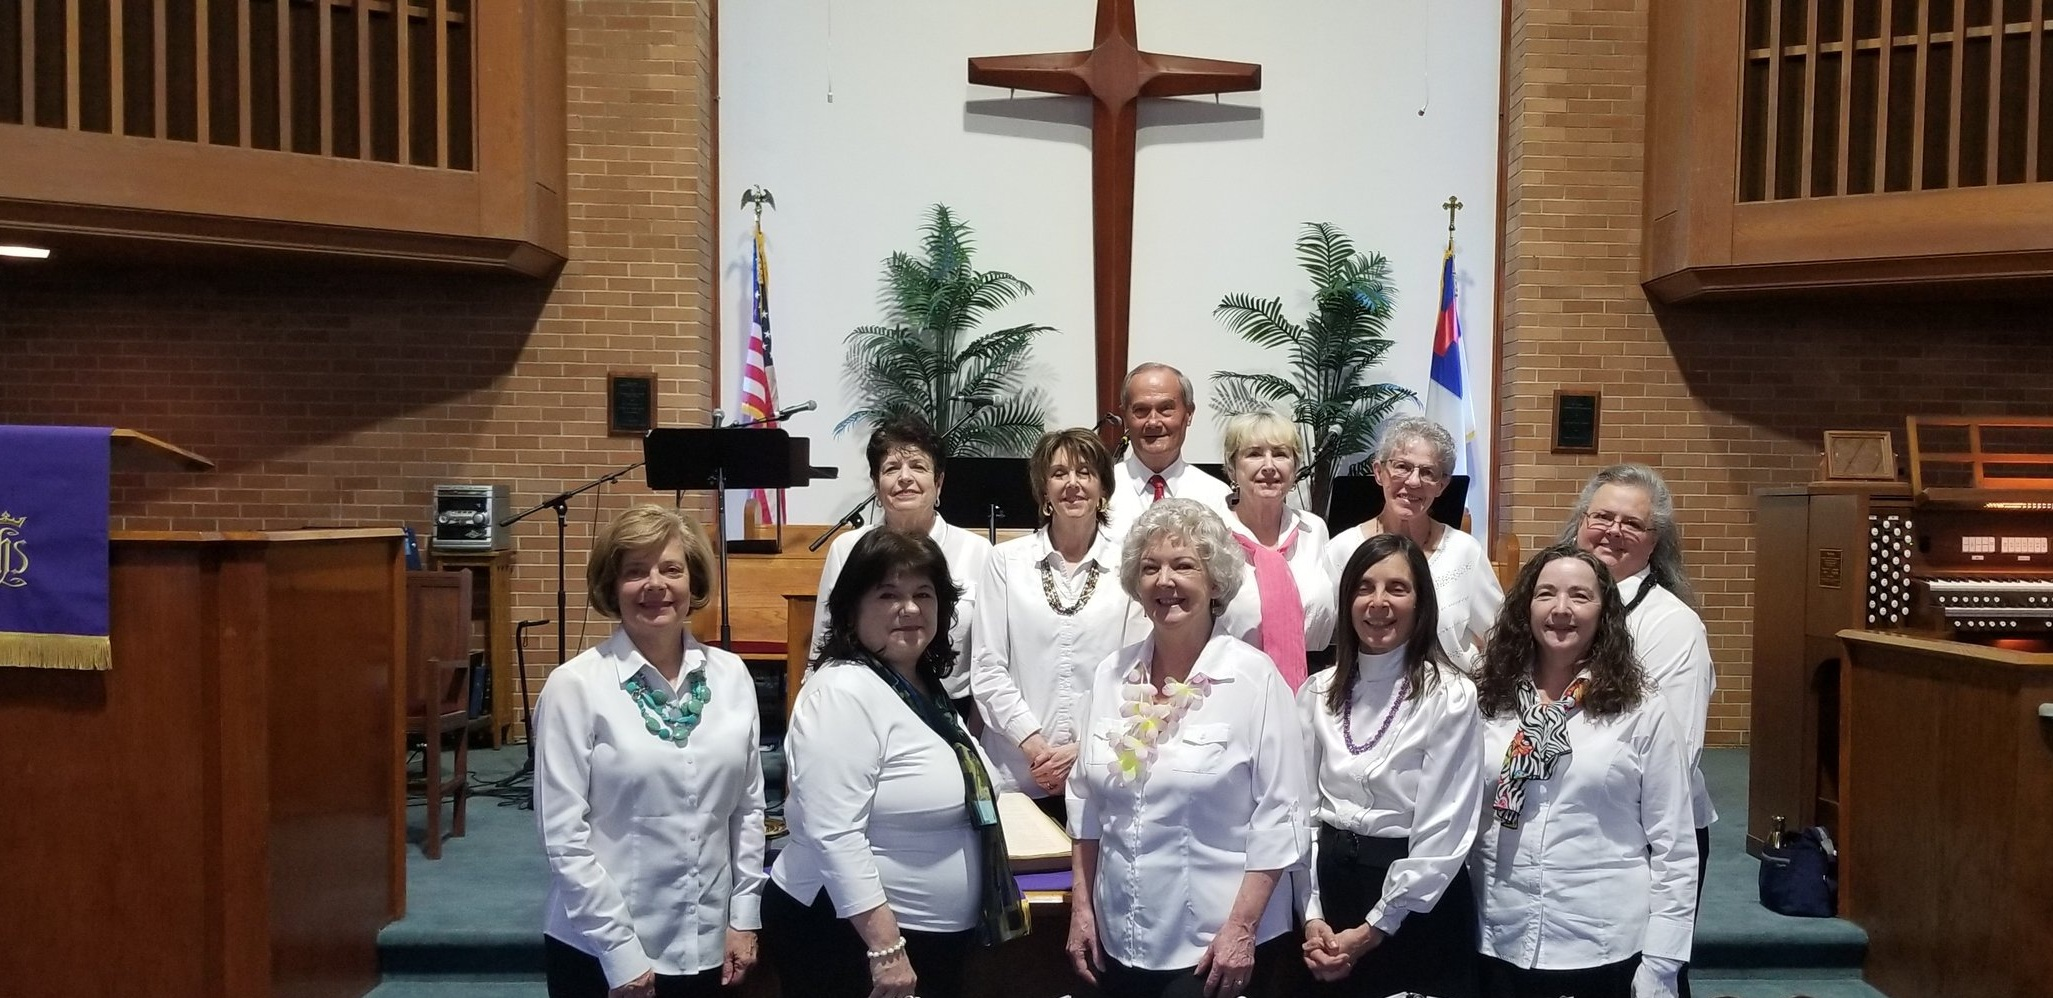 The Congaree Heavenly Ringers of Congaree Presbyterian Church